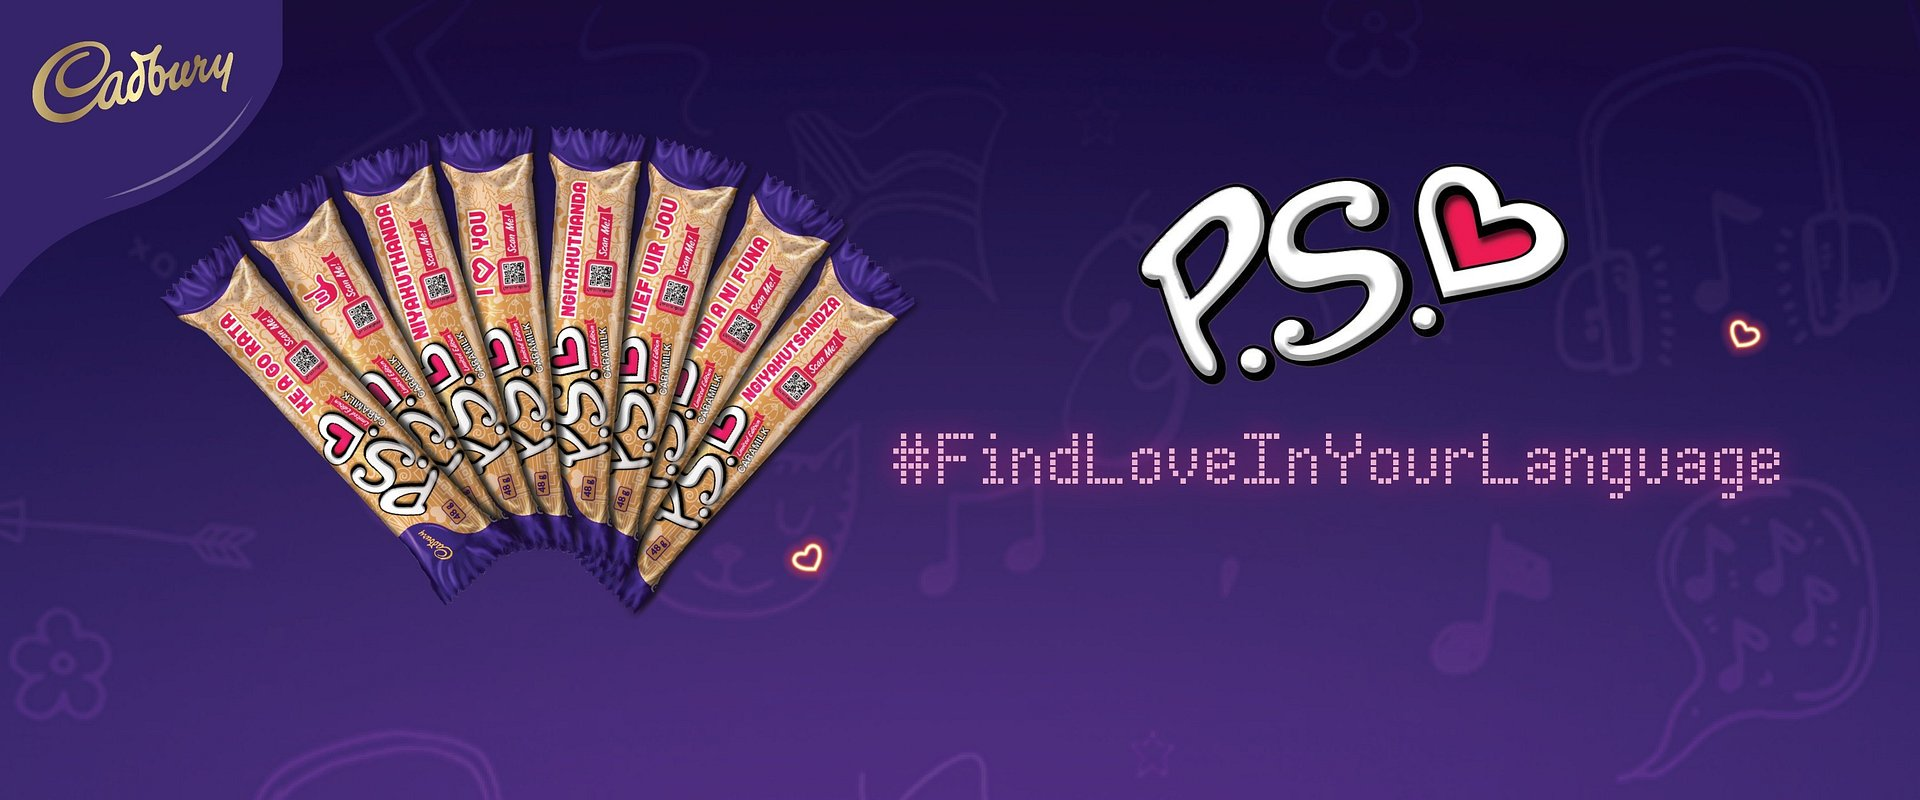 Sing a Love Note and #FindLoveInYourLanguage with the Cadbury P.S. Valentines Campaign